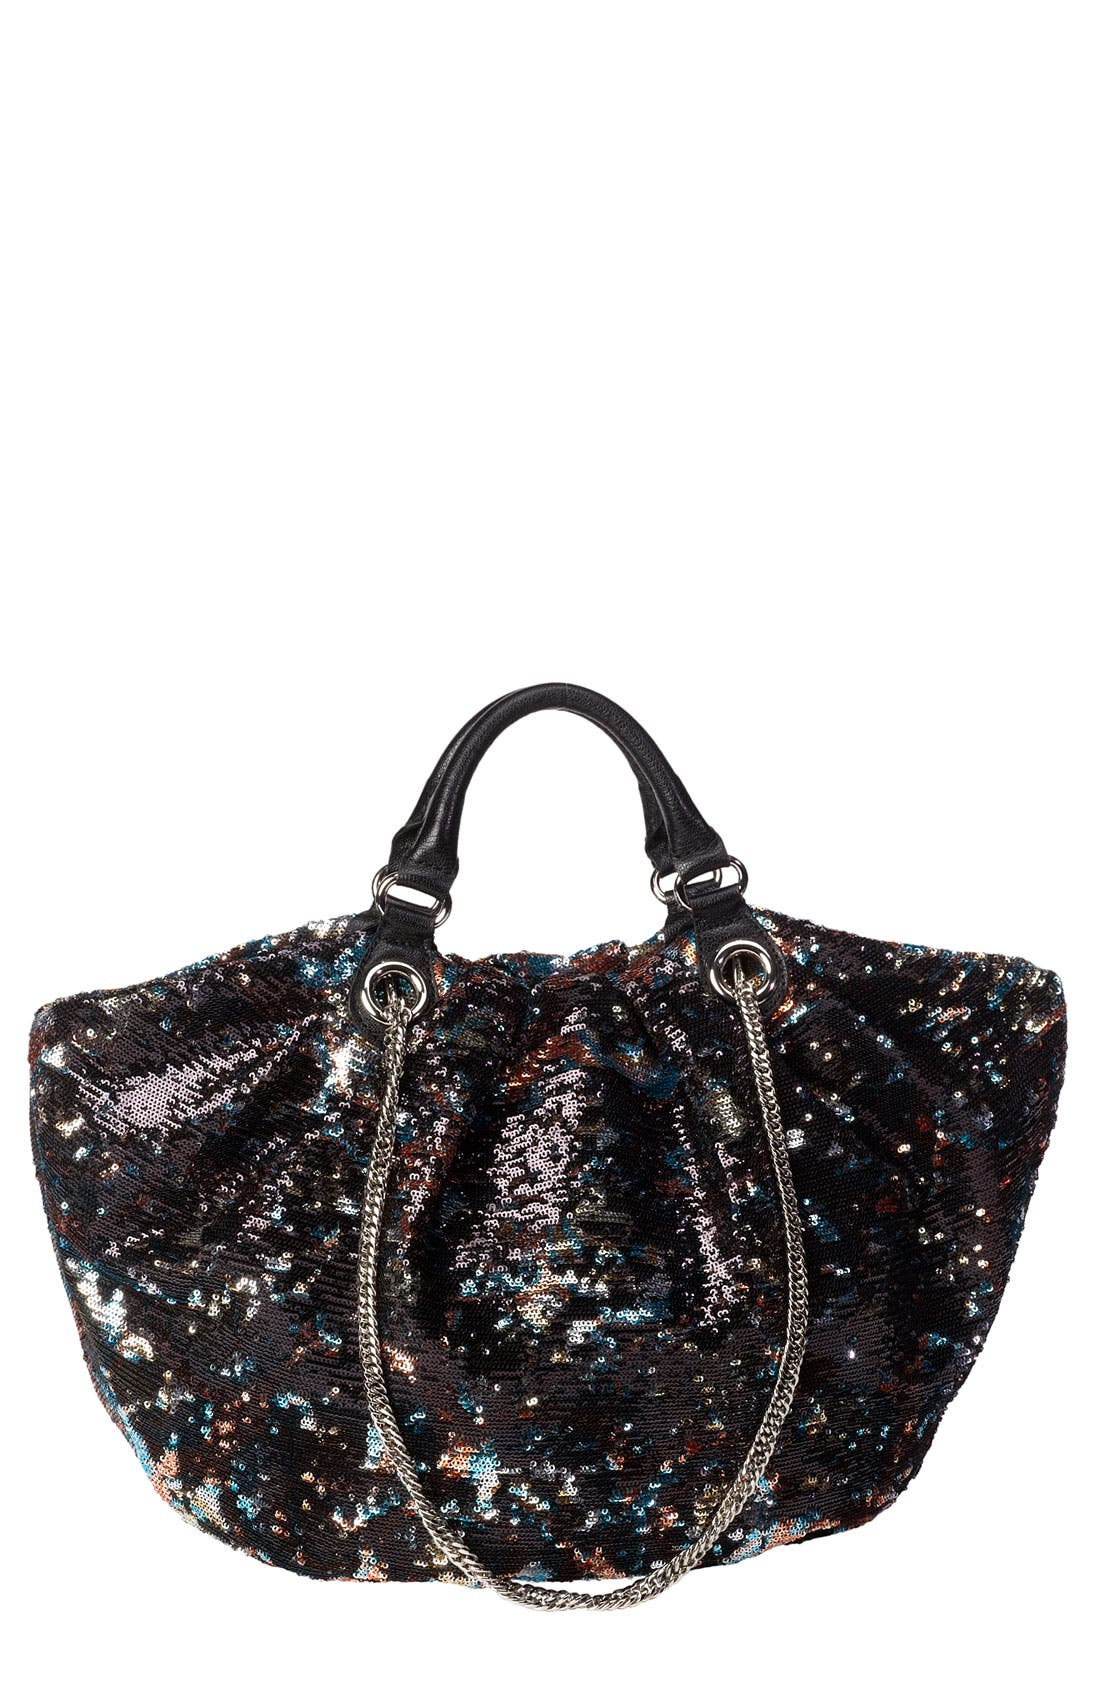 Alternate Image 1 Selected - Oryany 'Wendy - Large' Reversible Sequin Tote